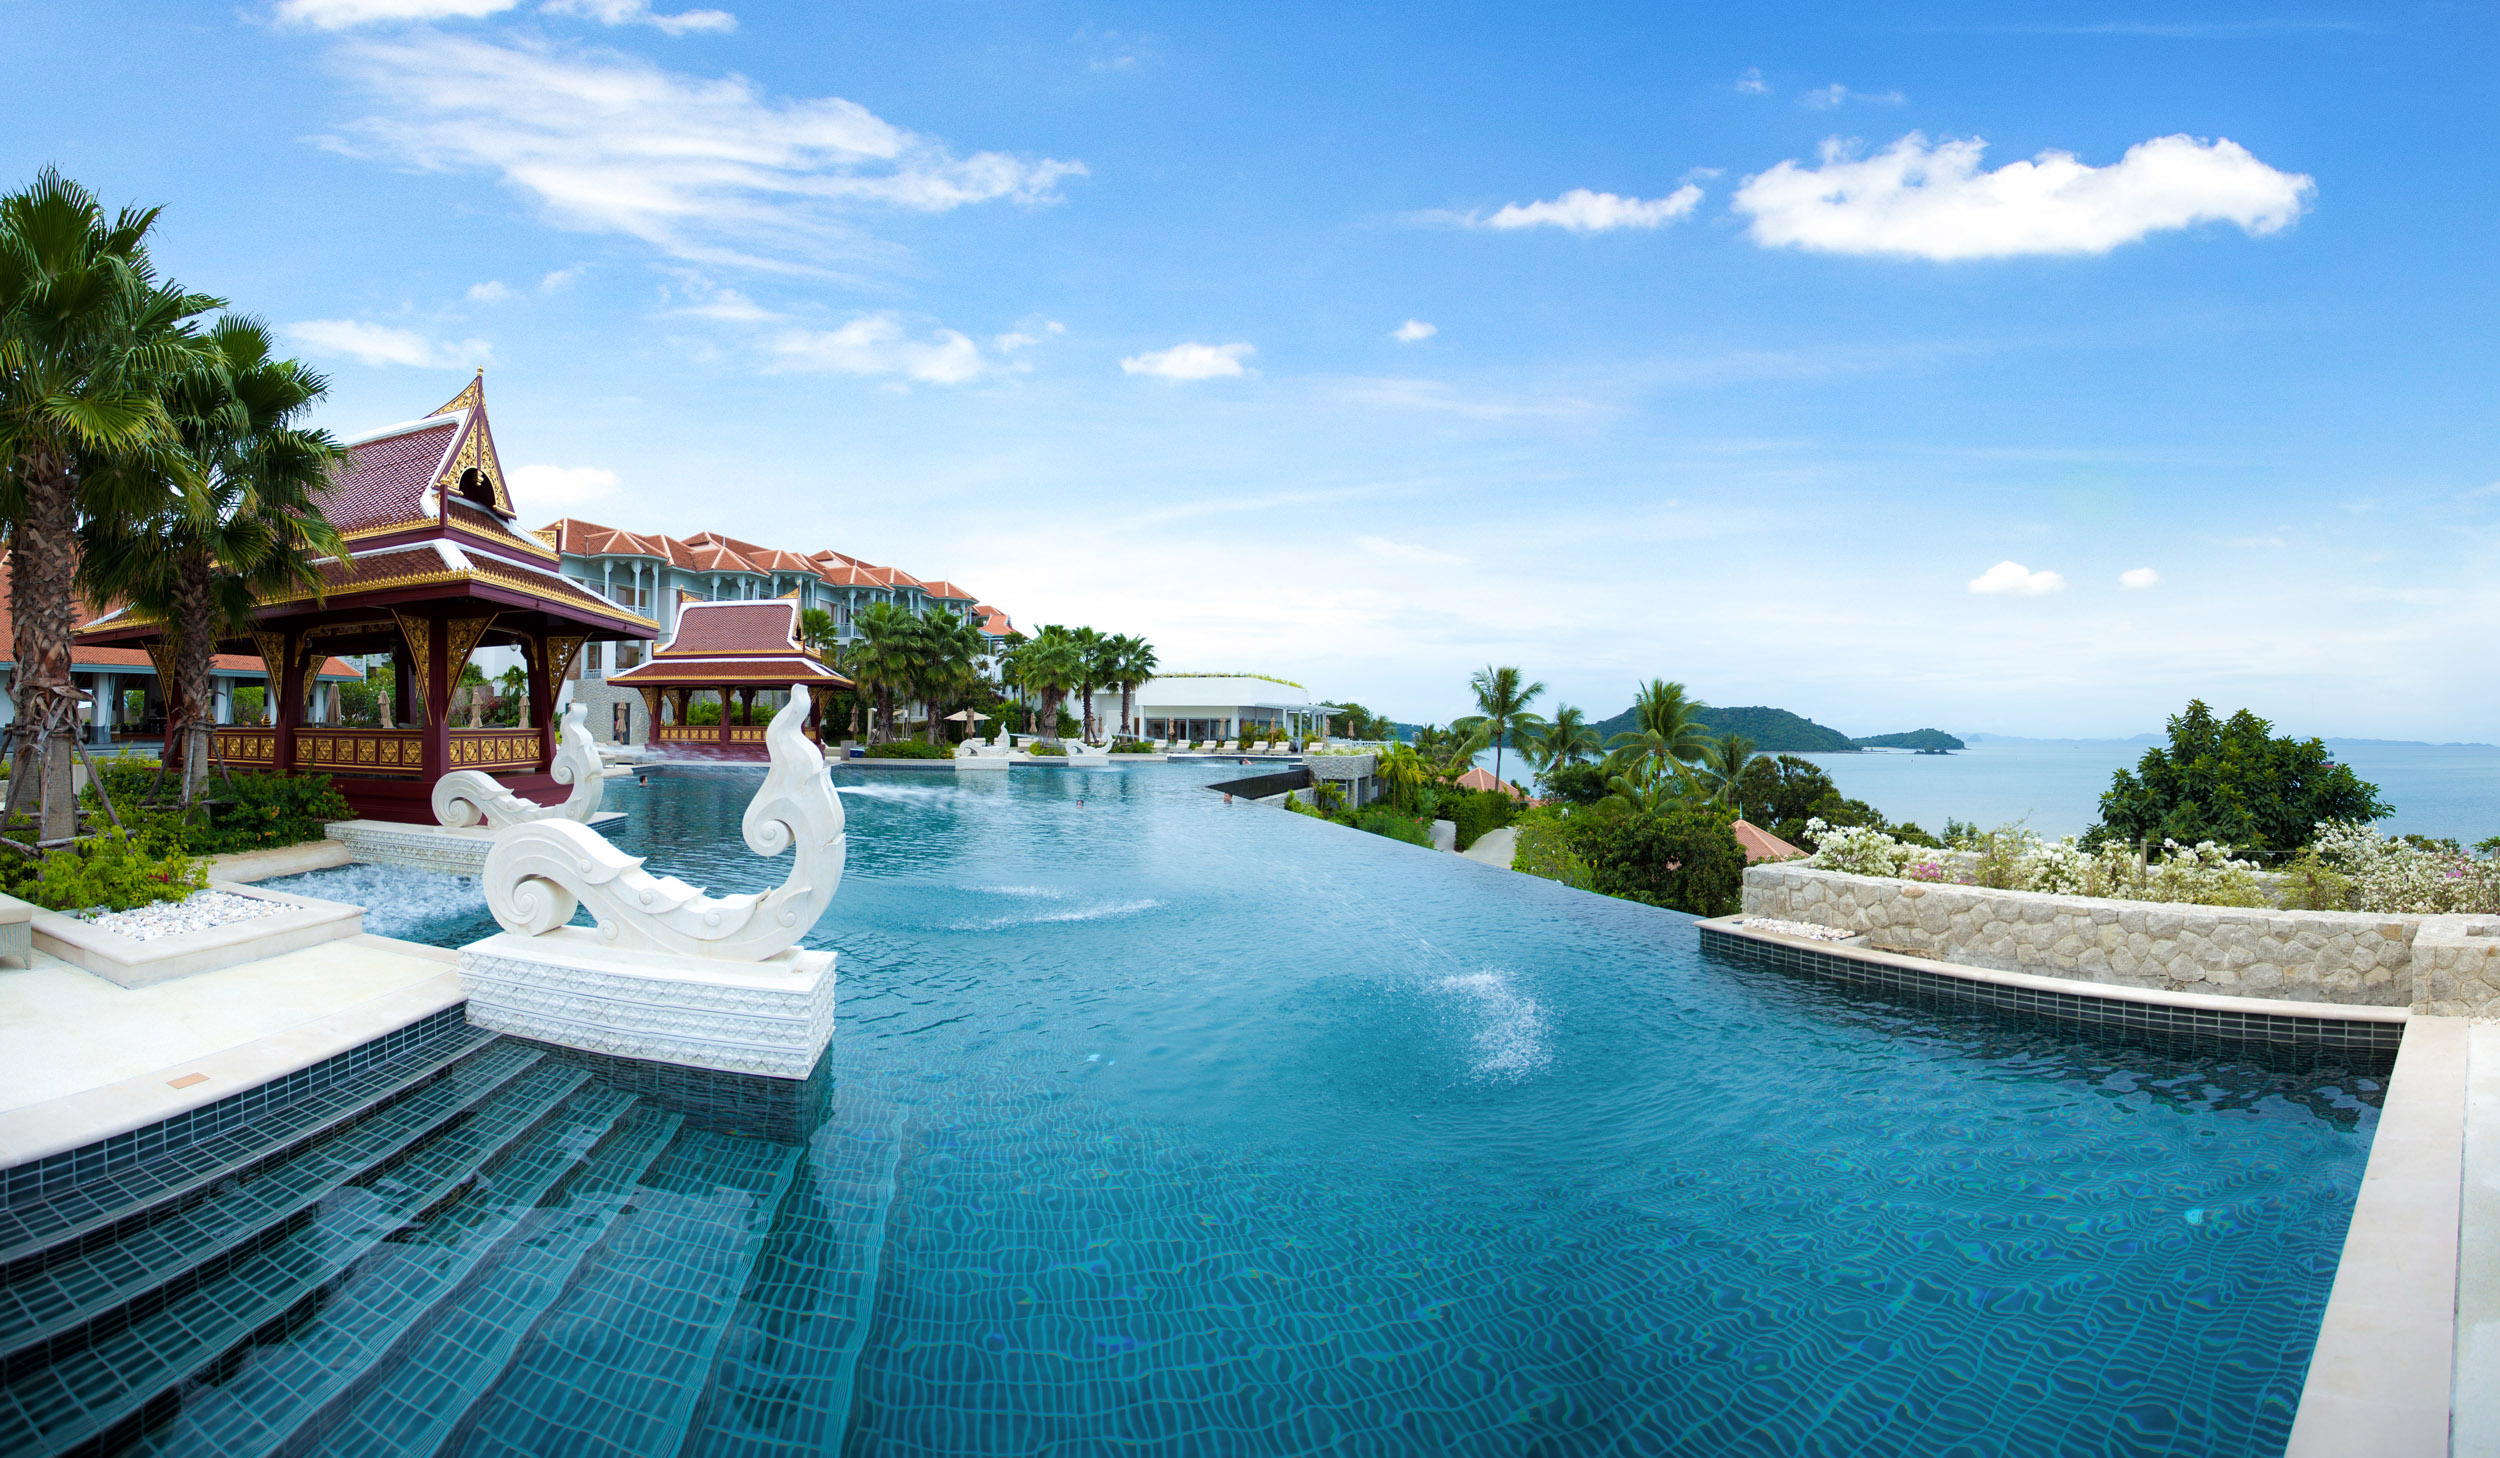 Swimming pool Phuket